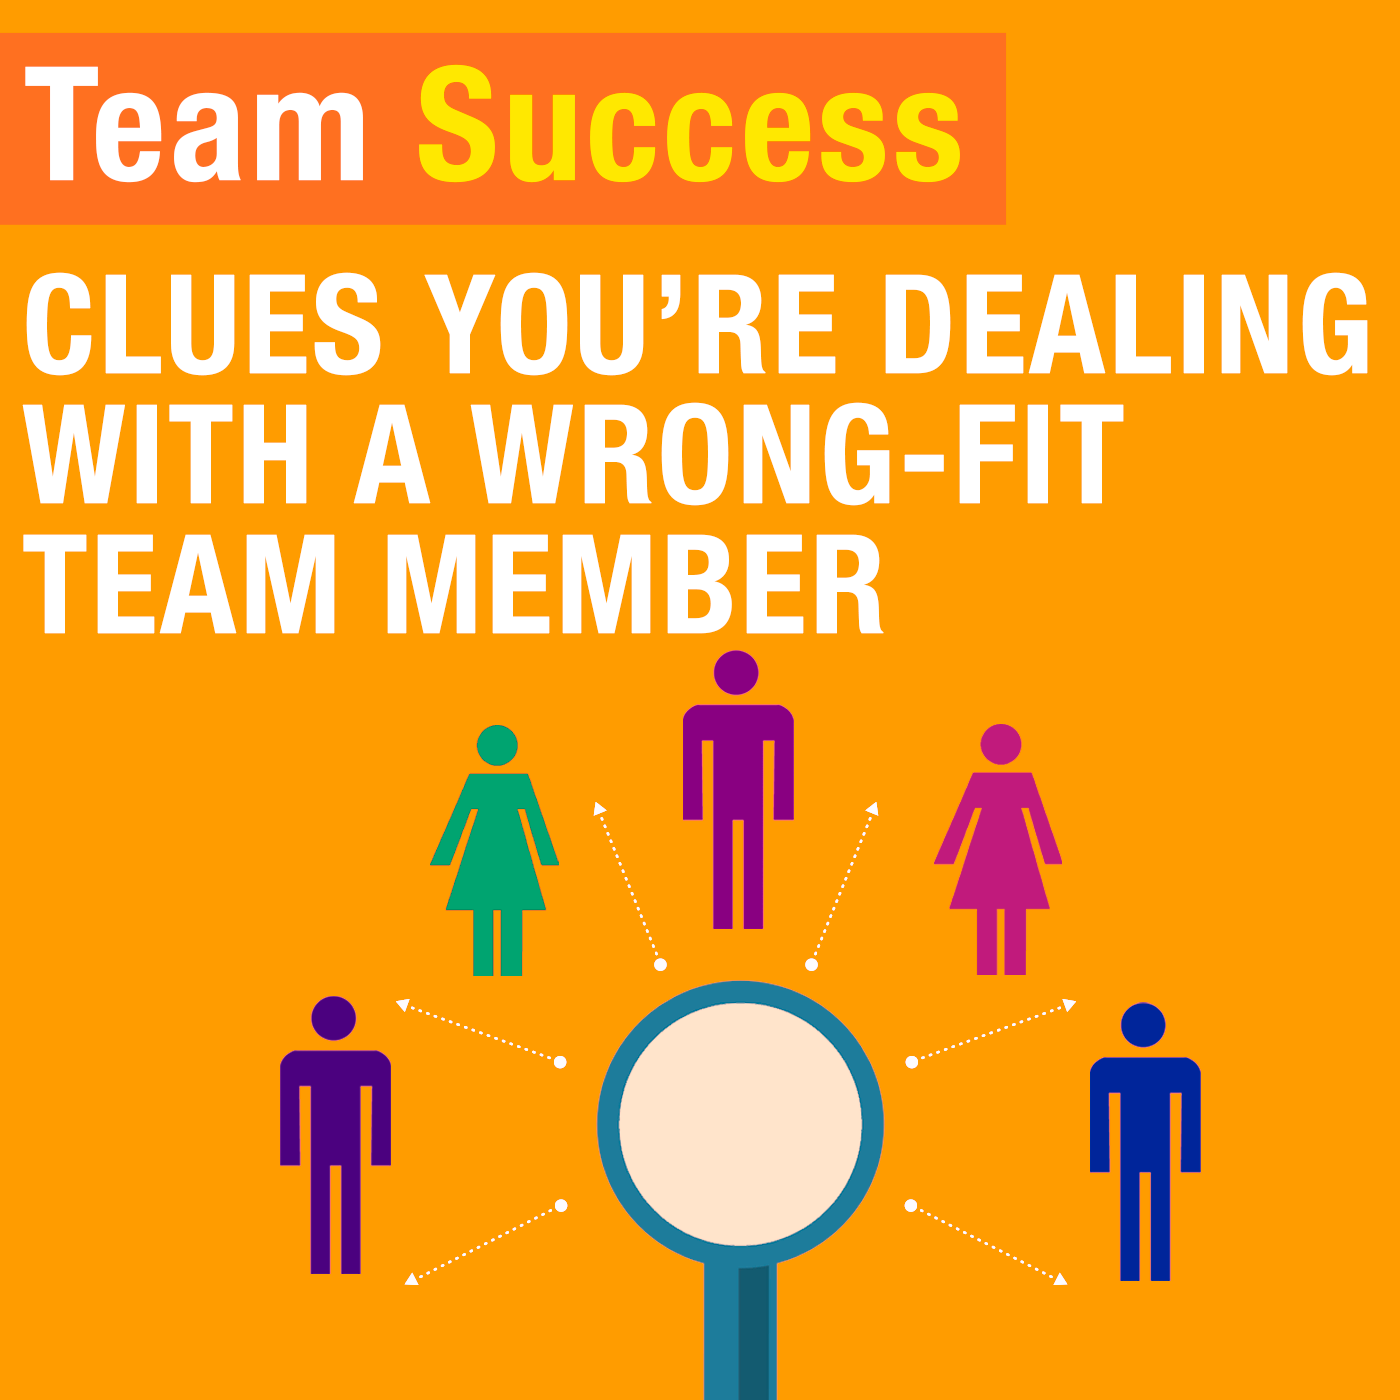 Clues To A Wrong Fit Team Member